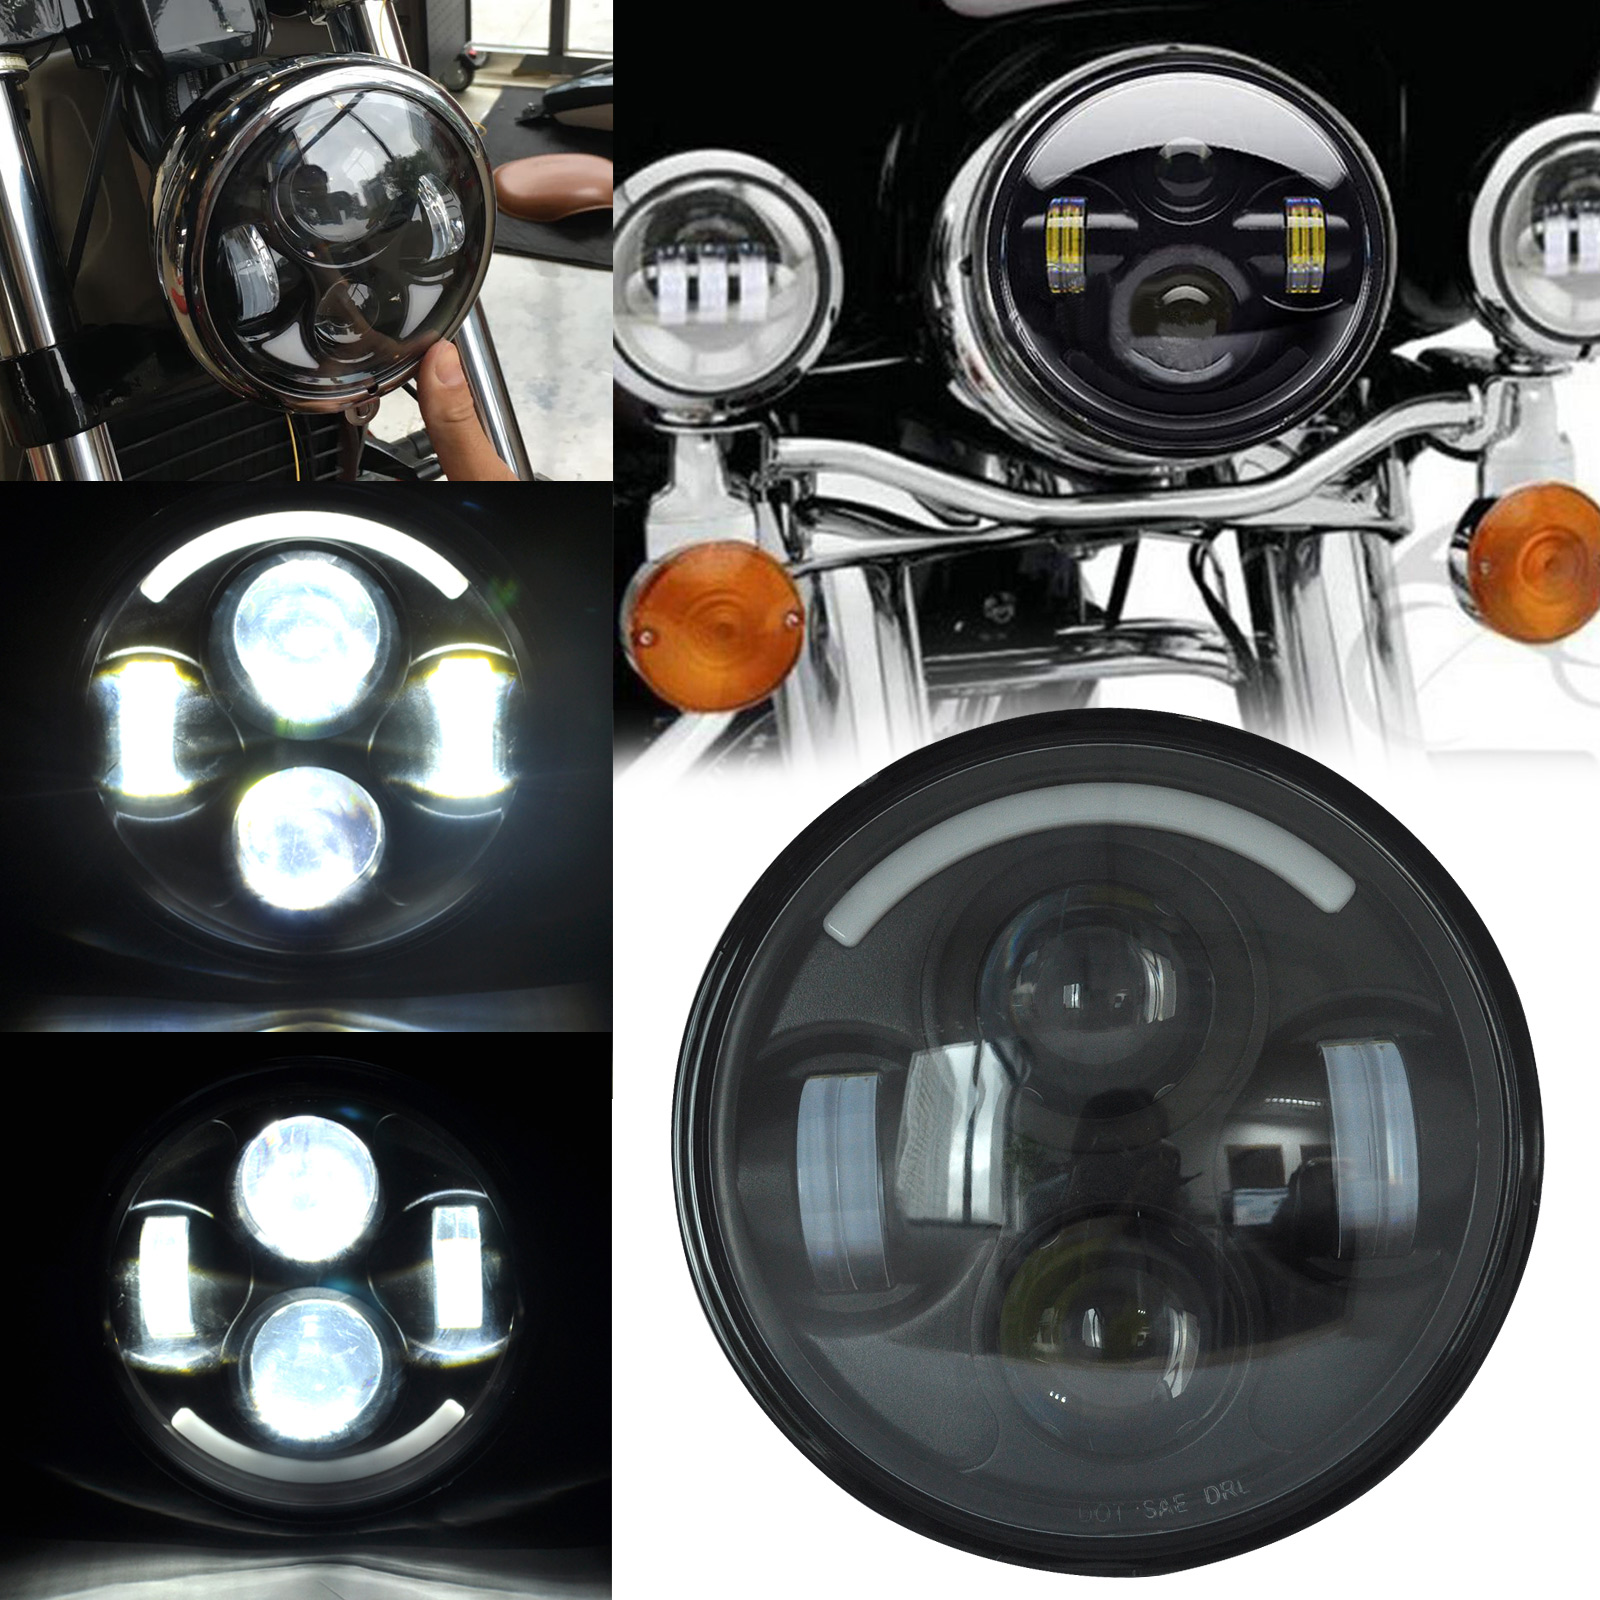 5.75 5-3/4 Motorcycle Black Projector Daymaker Hi/Lo HID LED Headlight for Harley 5 75 led motorcycle headlight projector daymaker drl lights for harley 5 3 4